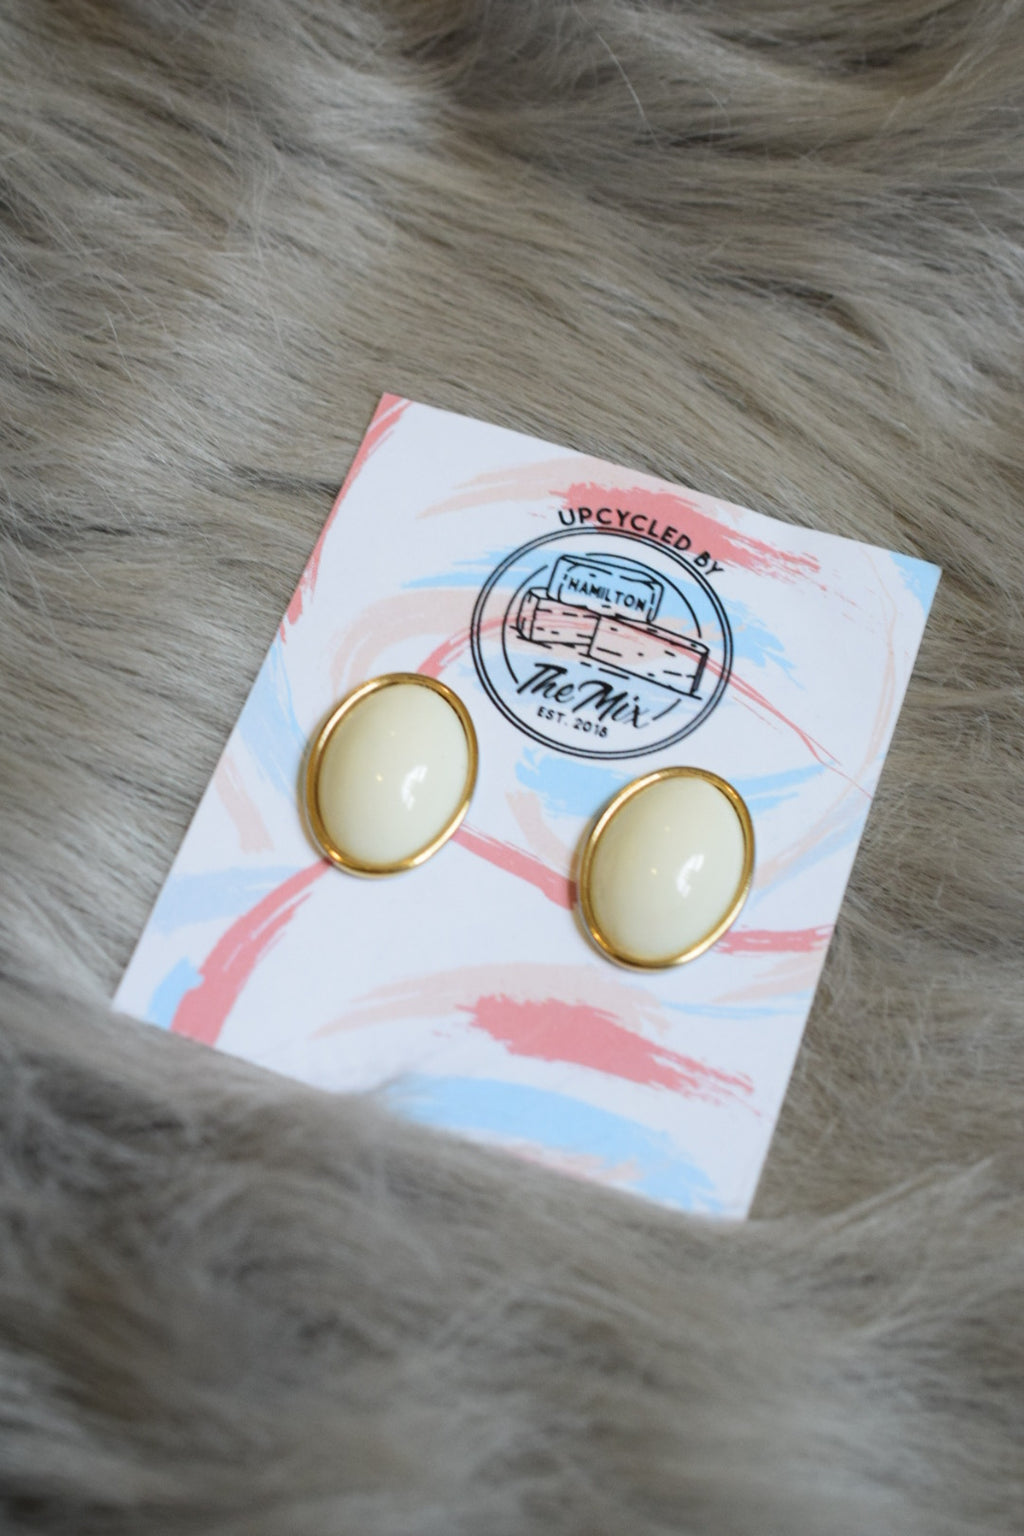 White + Gold Statement Earrings - Upcycled Accessories - The Mix HamOnt  Edit alt text